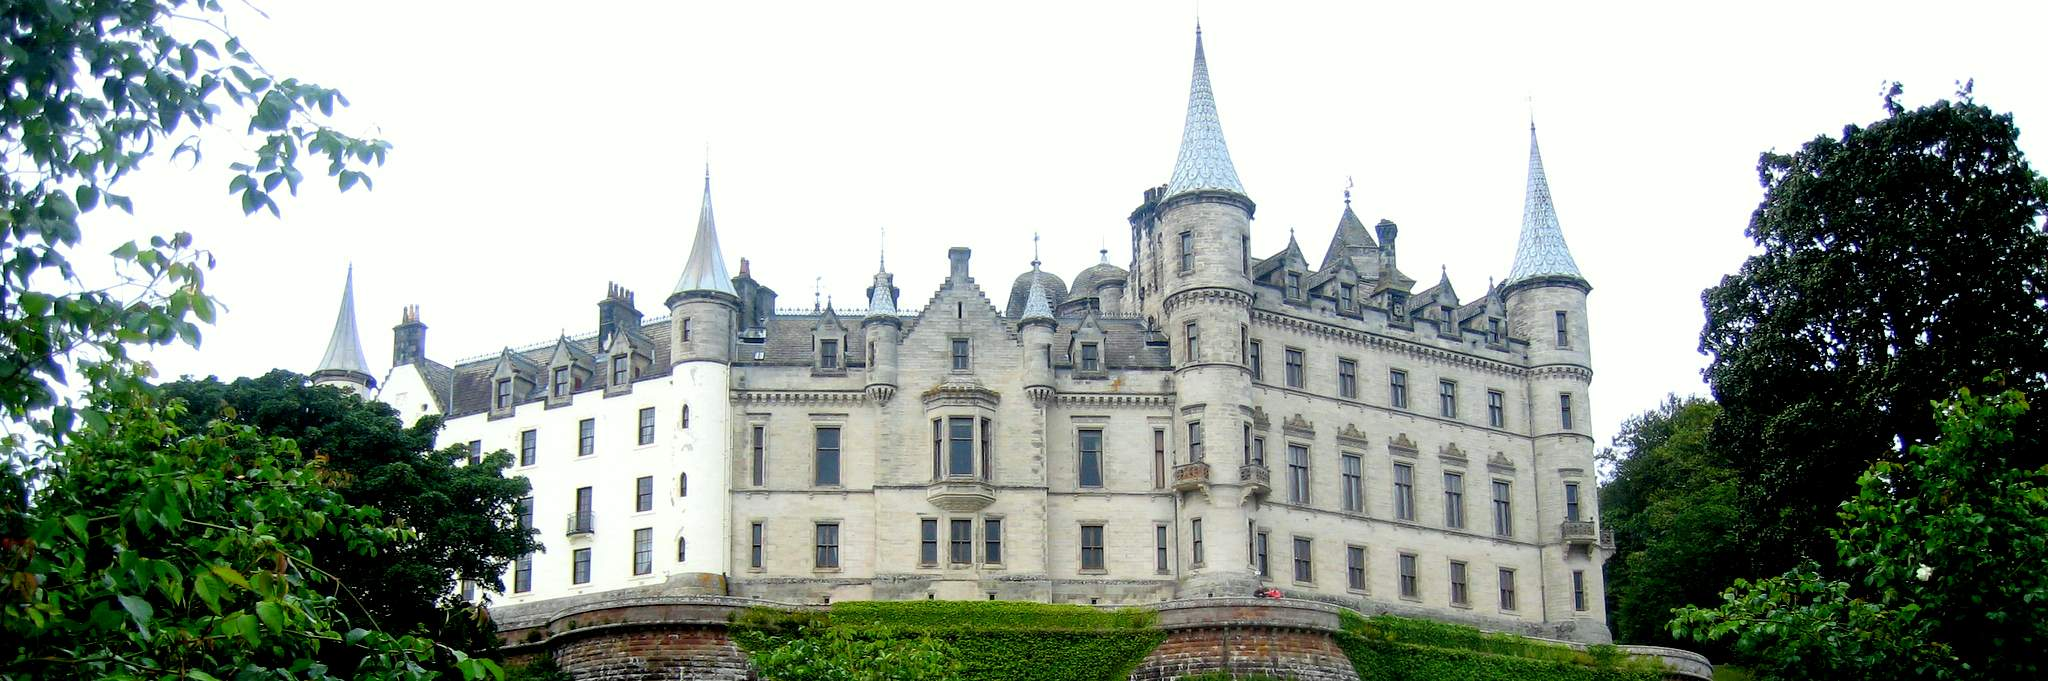 Scottish Castles Scotland S Best B Bs 4 5 Star Accommodation